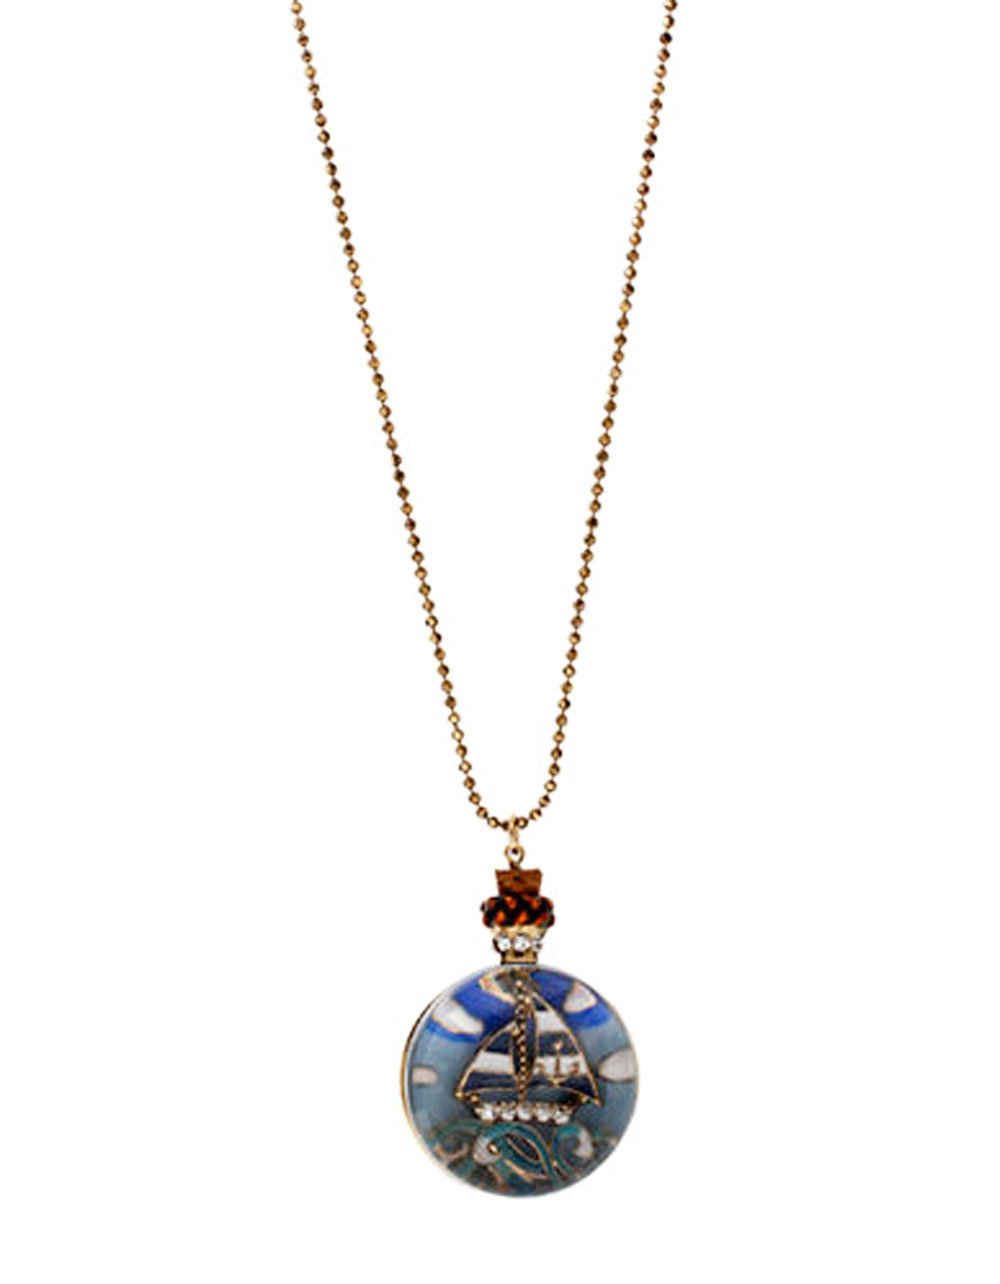 Betsey Johnson Jewelry Ship Shaoe Sailboat Compass Necklace